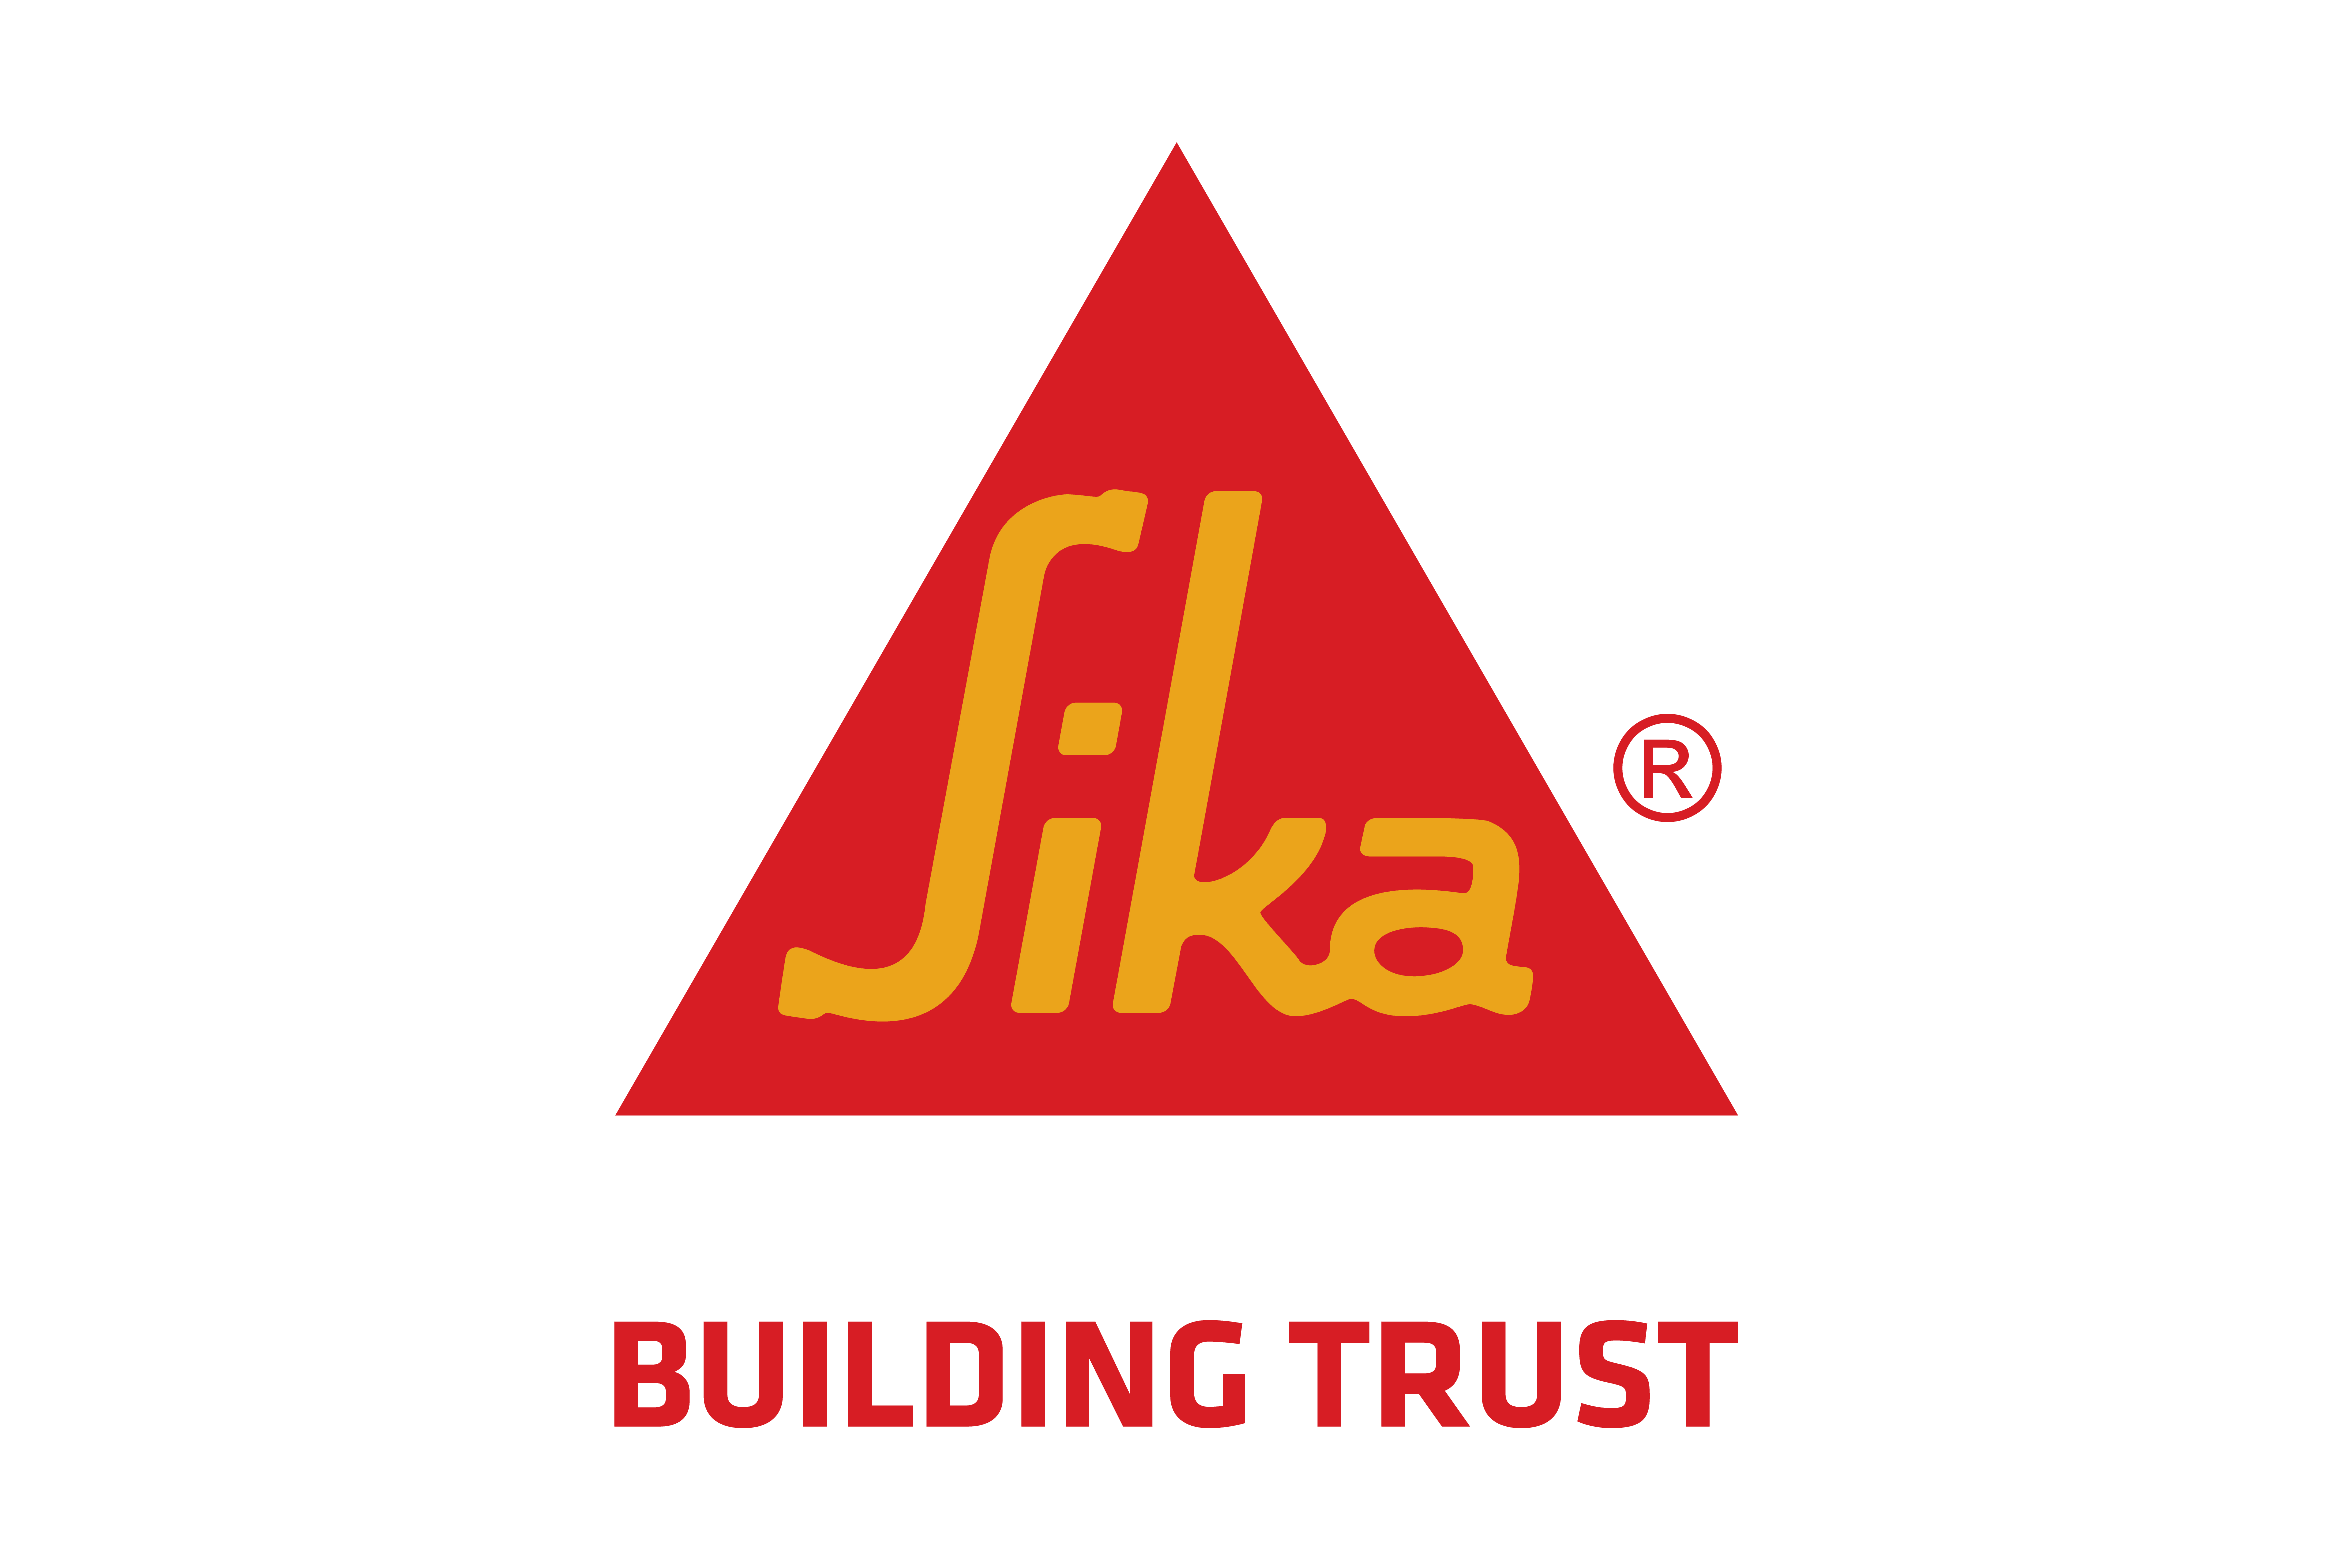 Sika Building Trust